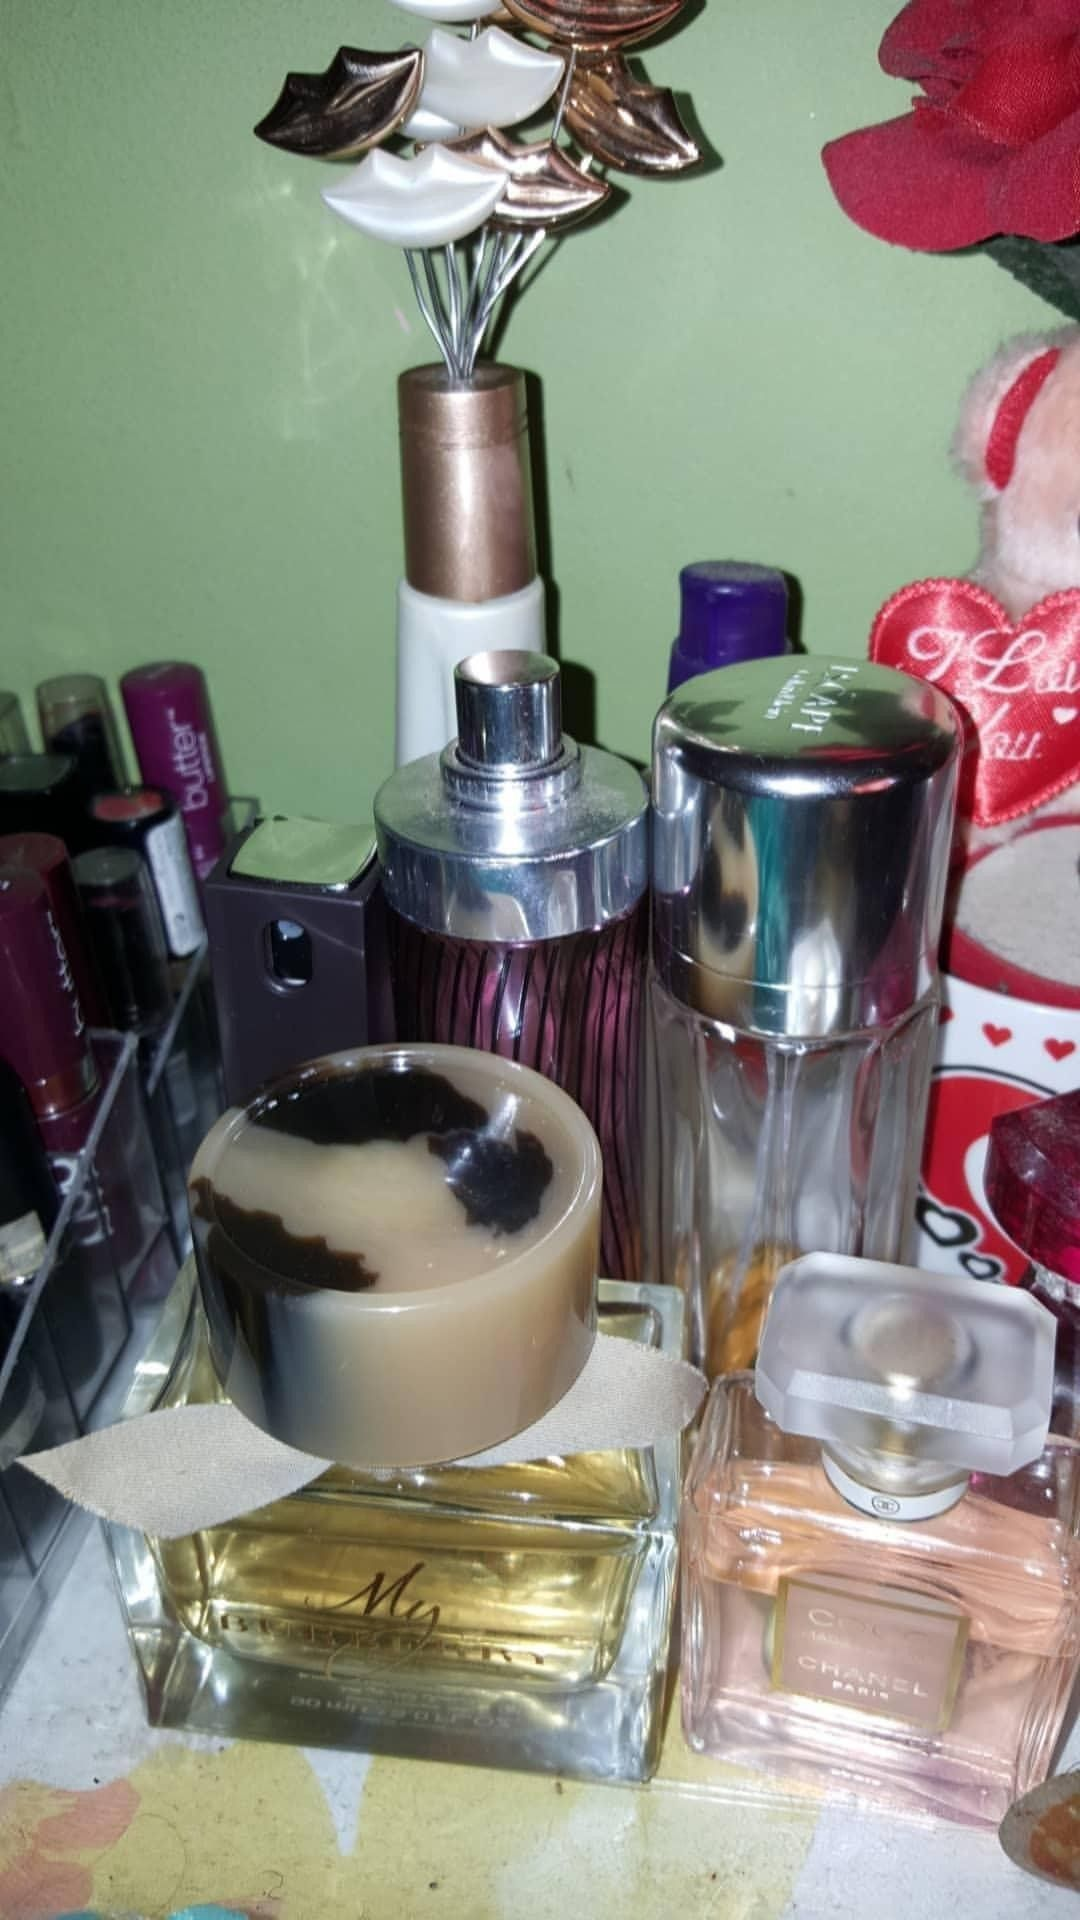 Pin by Shenelle Mendoza on Perfume Chocolate, Perfume, Food